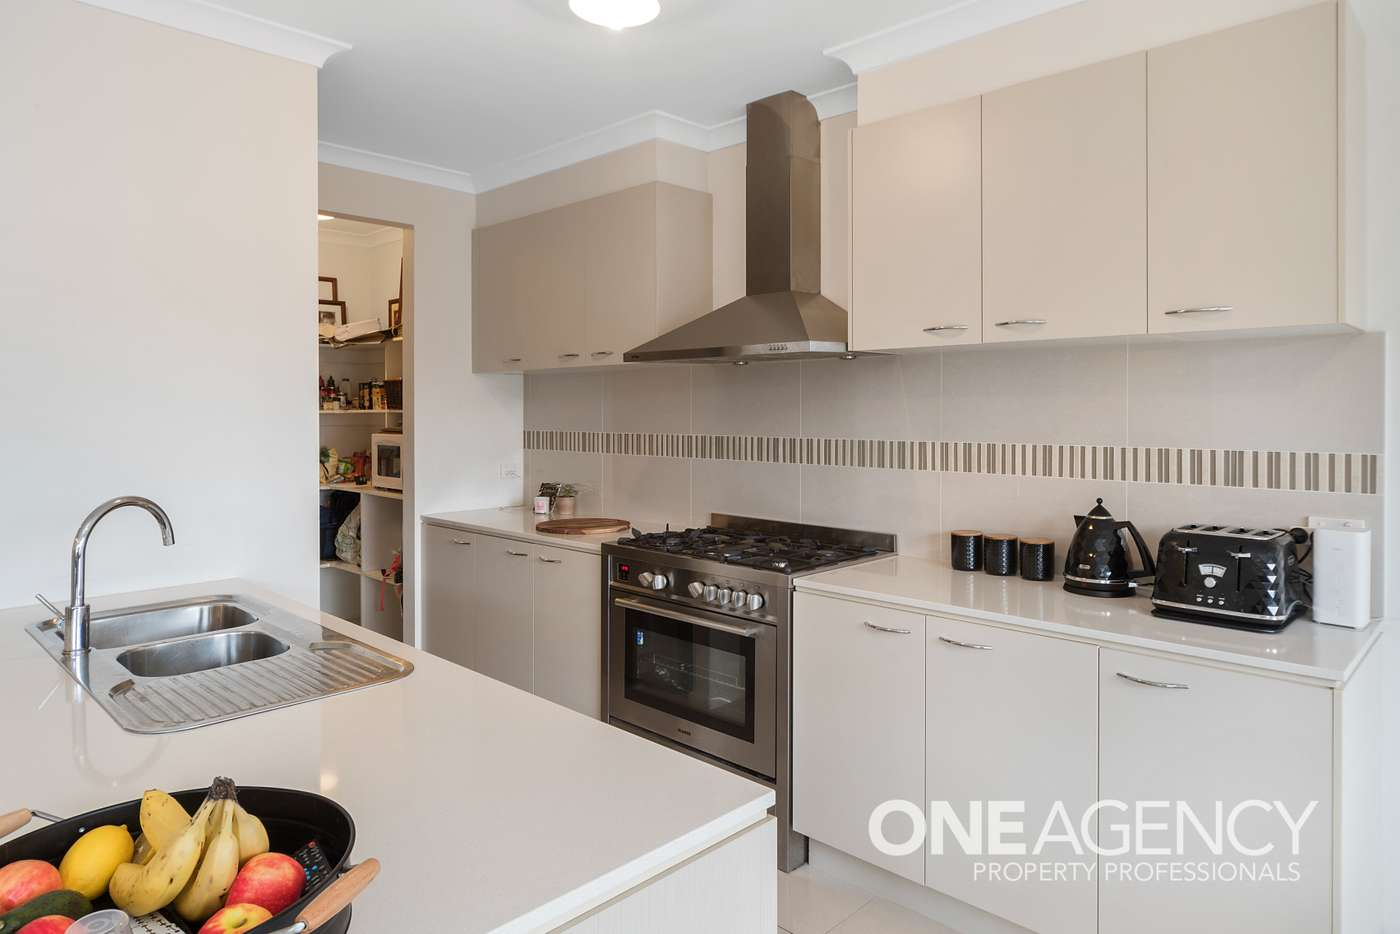 Fifth view of Homely house listing, 34 Cockatoo Road, Pakenham VIC 3810